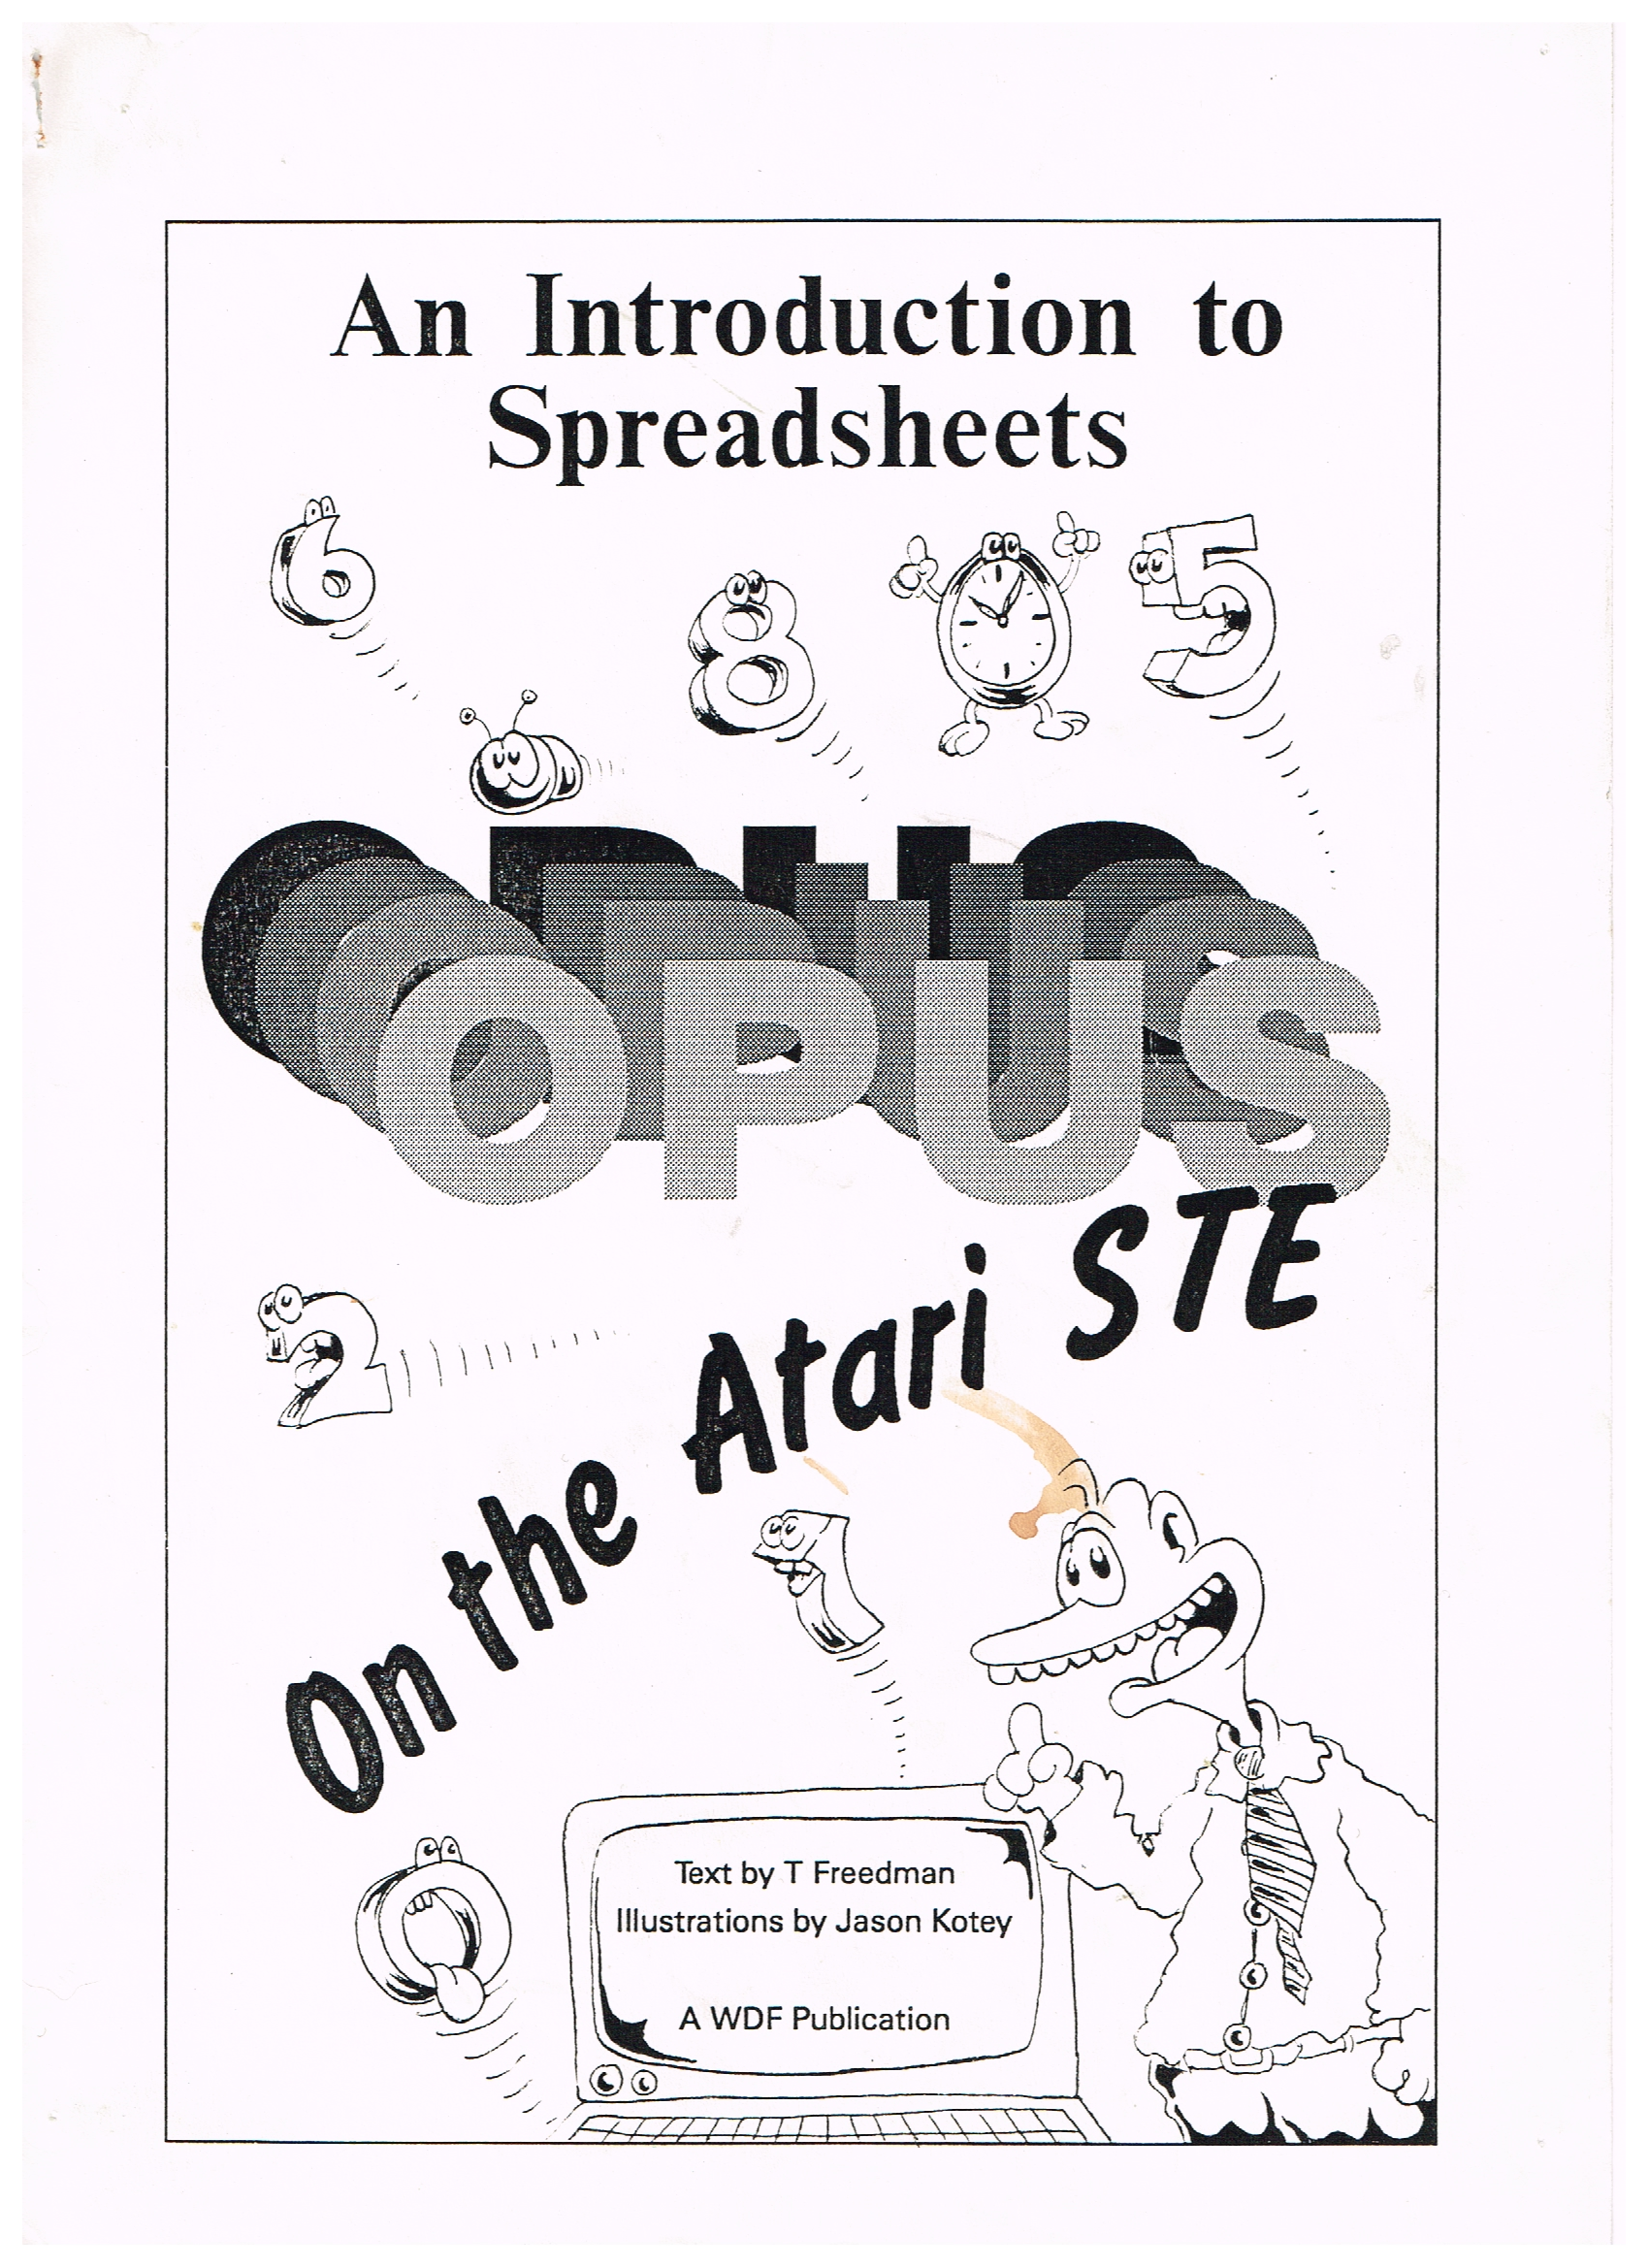 Spreadsheet manual by Terry Freedman